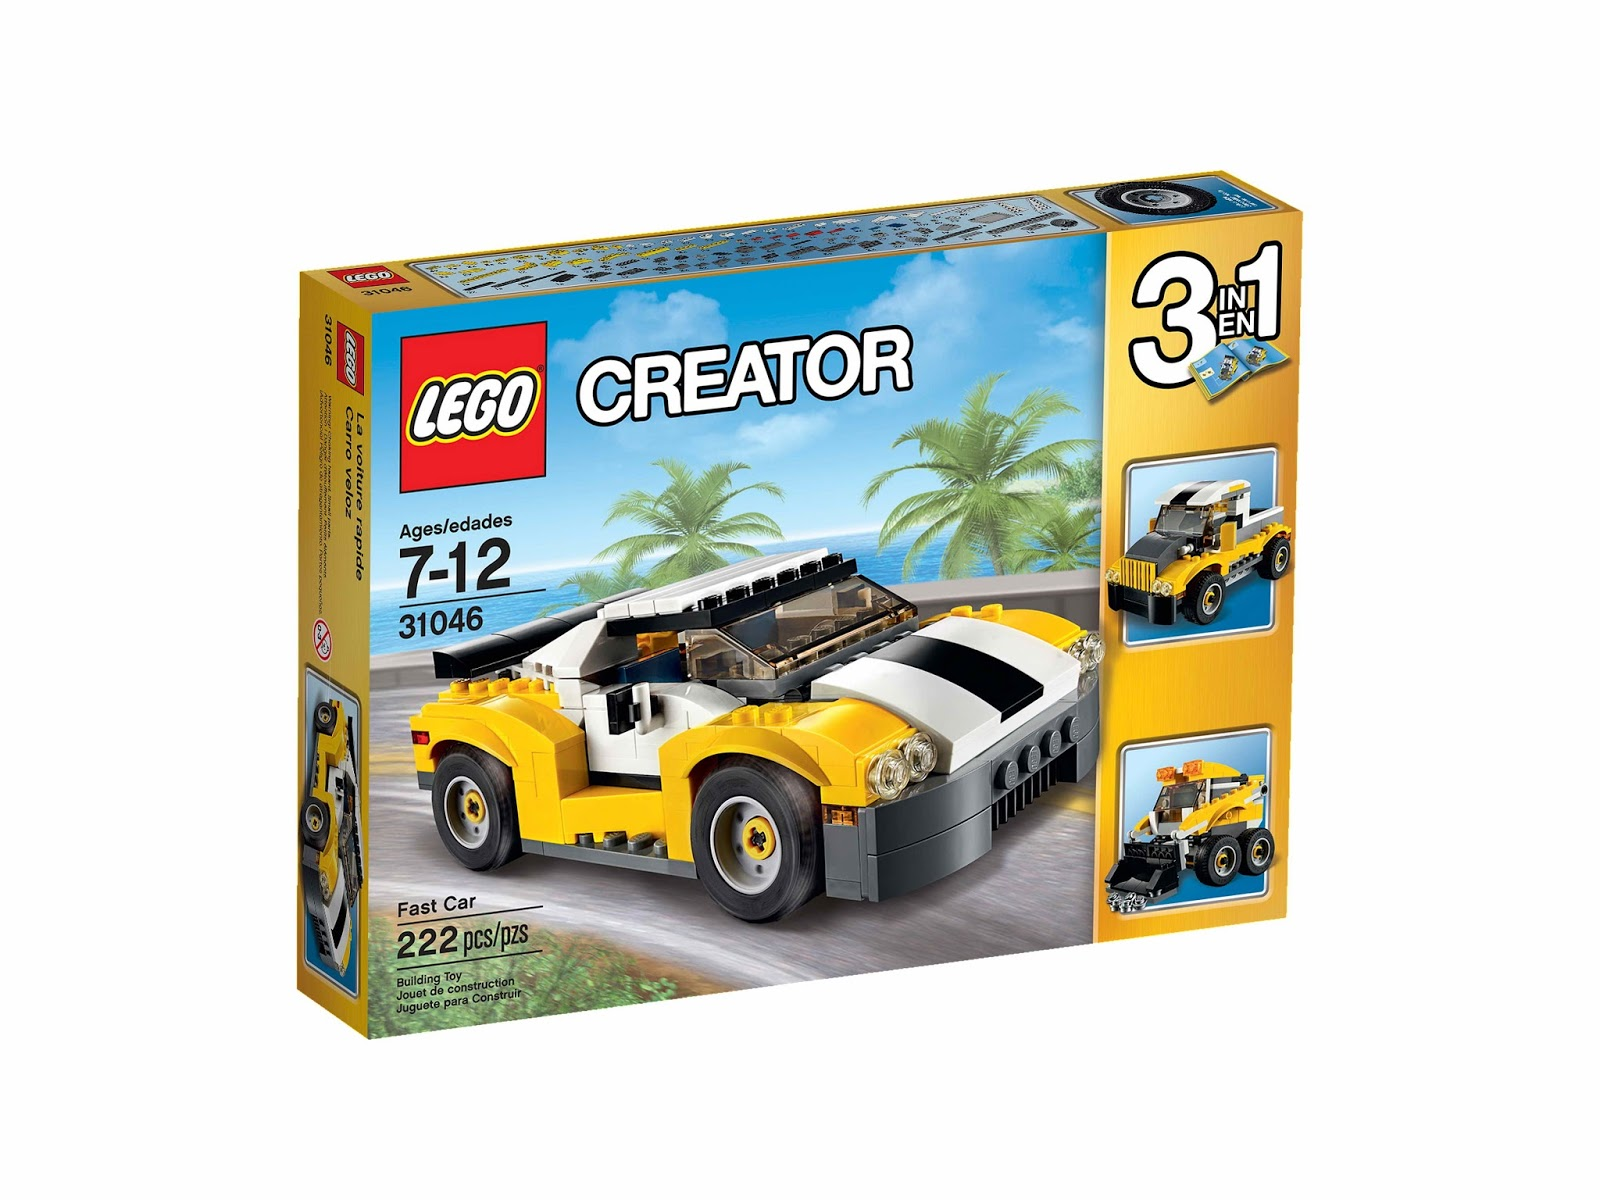 Box Fast Gossip191115 31046 Car And Lego Pictures Art vNmwn0O8